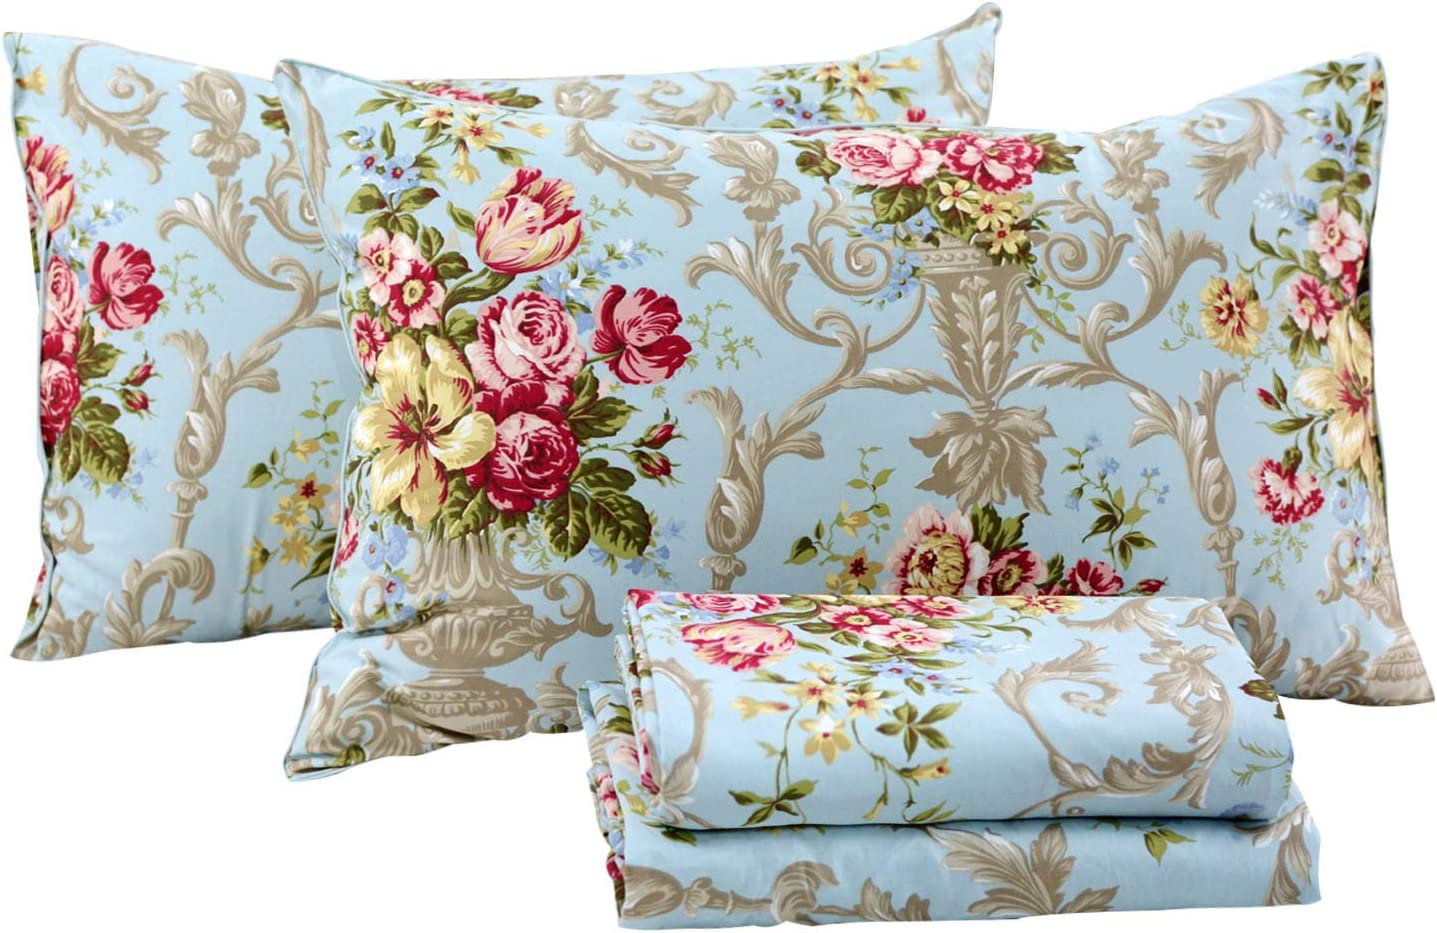 FADFAY Shabby Floral Bedding Elegant Set Bed Columbus Mall Peony Max 85% OFF Luxury Sheets